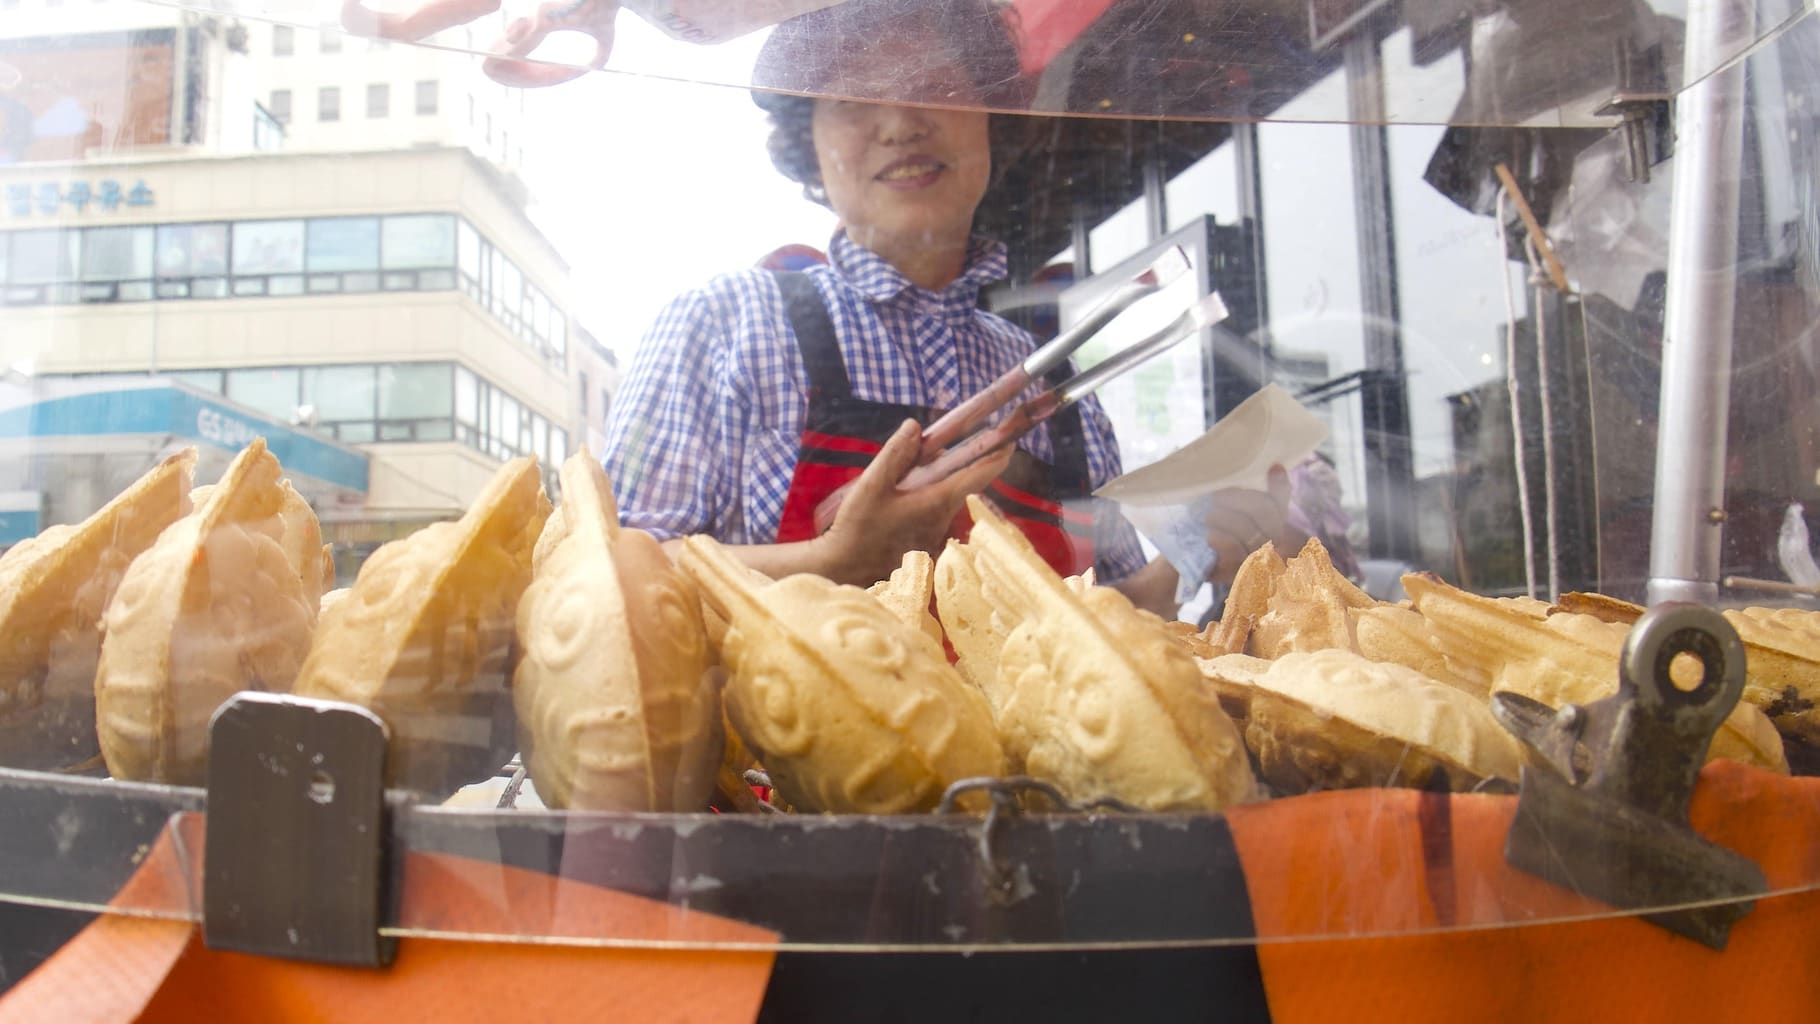 Street food in Korea, these fish have red bean inside